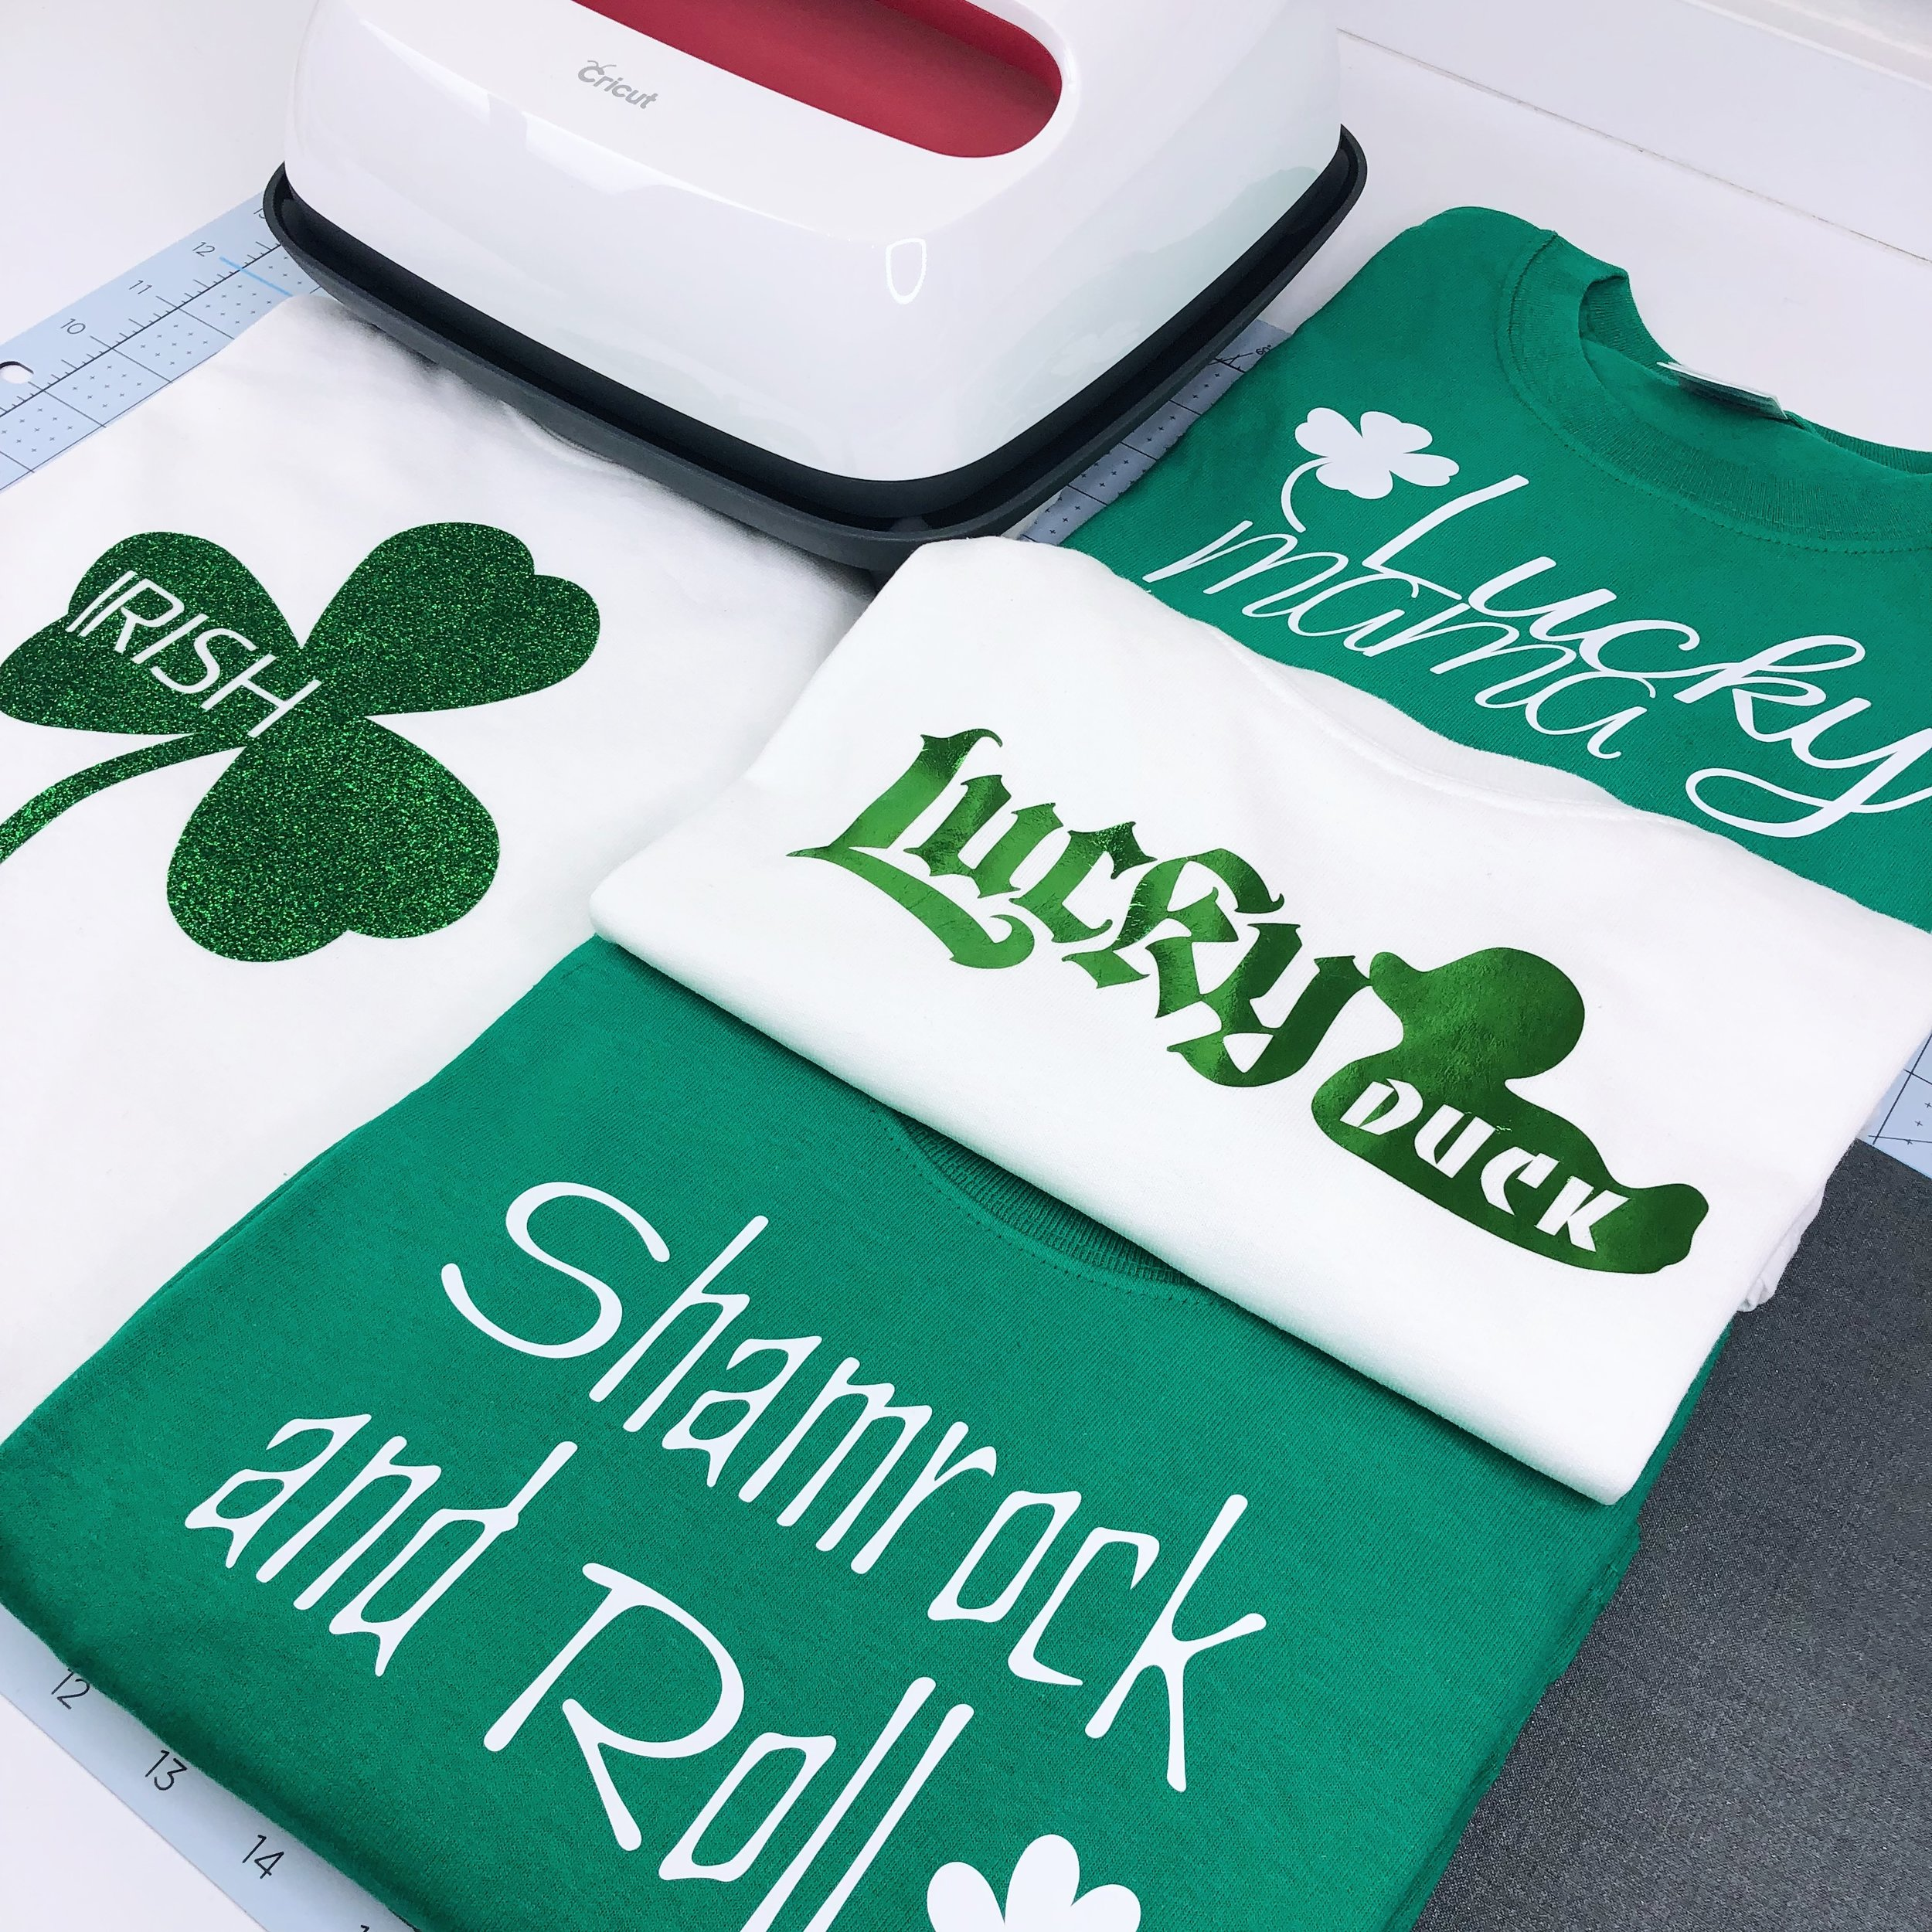 Ready to Shamrock 'n Roll with all these new designs. And all available in the Cricut Design Space.